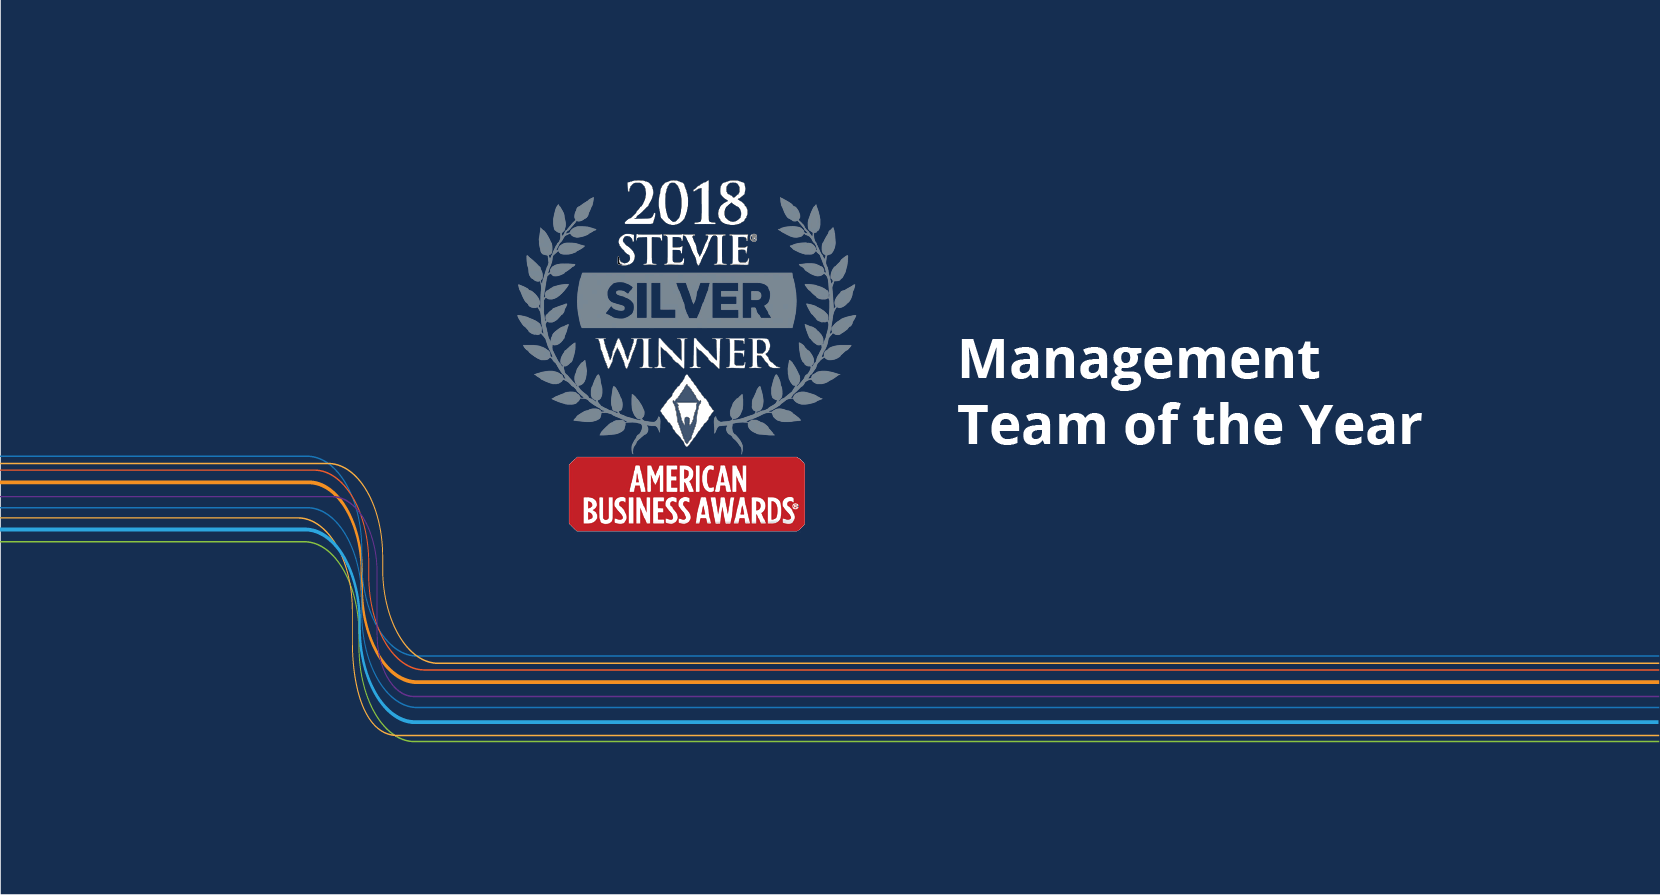 Management Team of the Year award banner for 2018